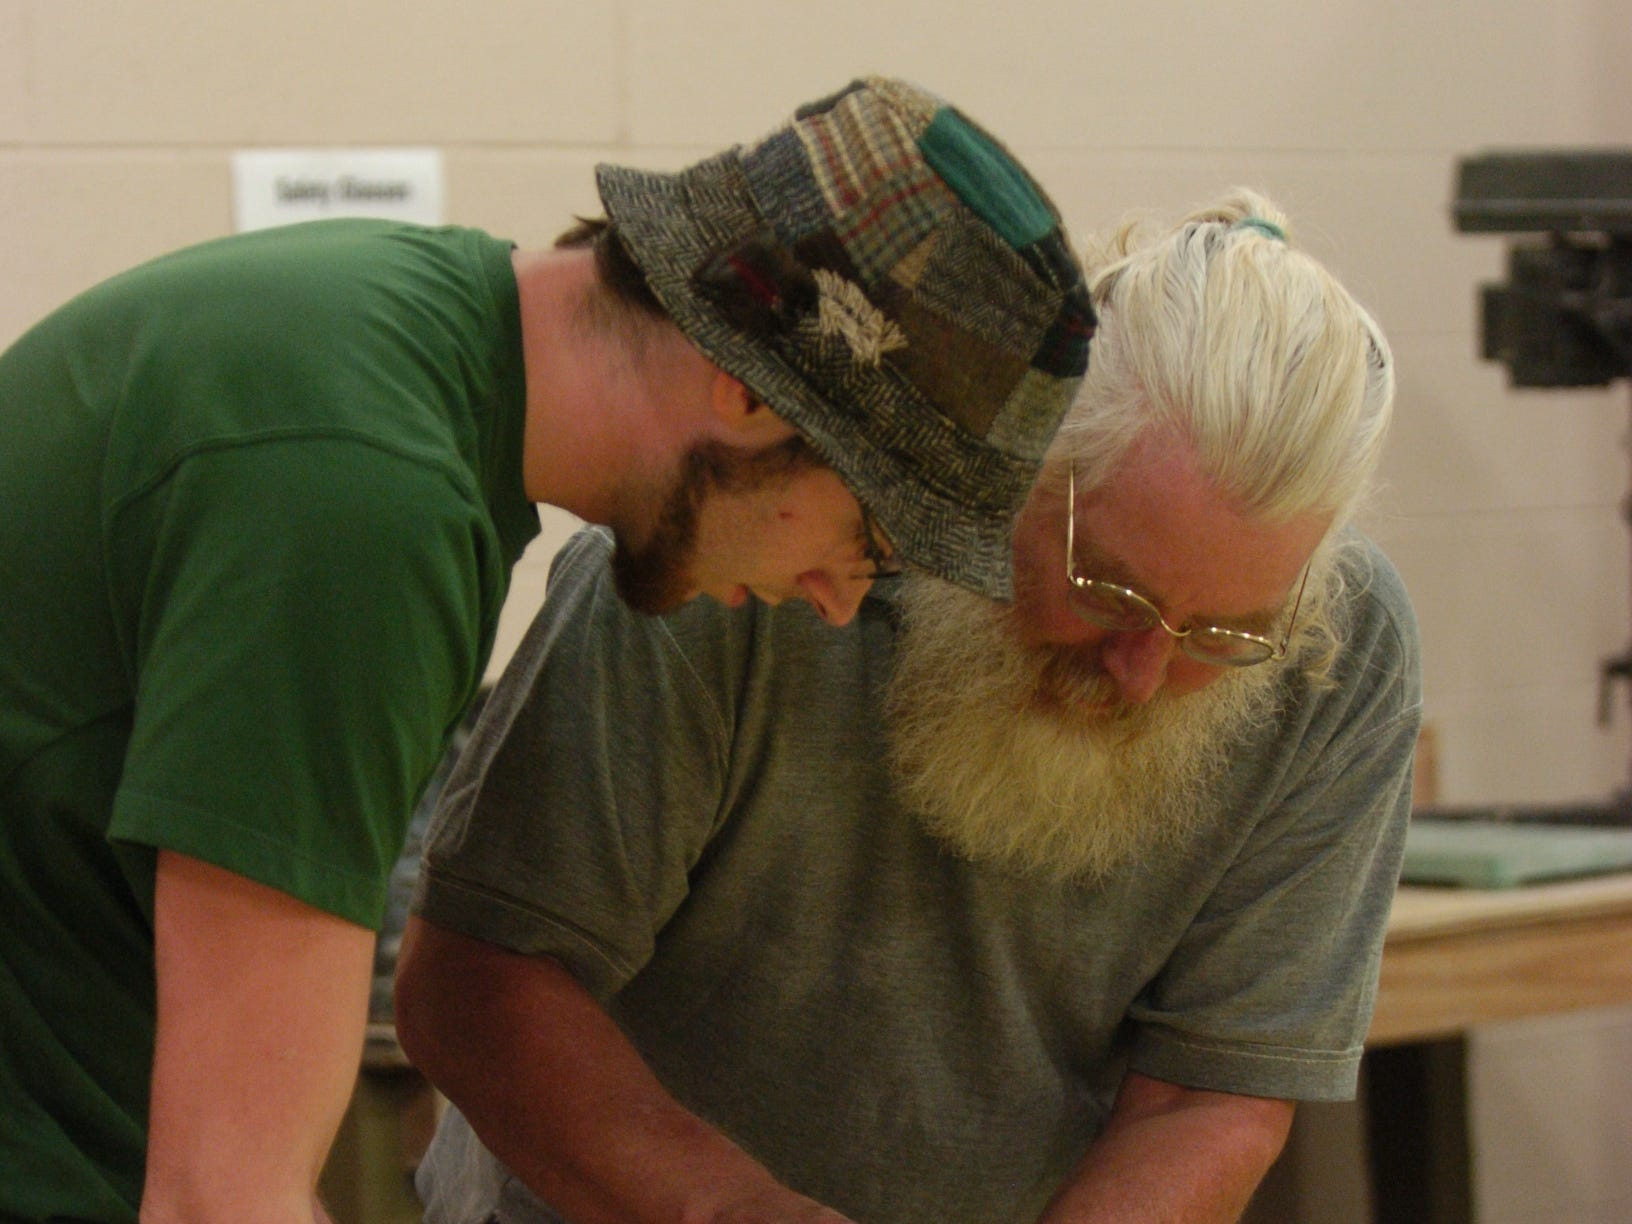 bagwellcenter.ASB#8370.jpg--METRO-- Professor Mike Rose helps student Luke Obanion during a sculpture class at the new Bagwell Center for Media and Art at Pellissippi State Community College.